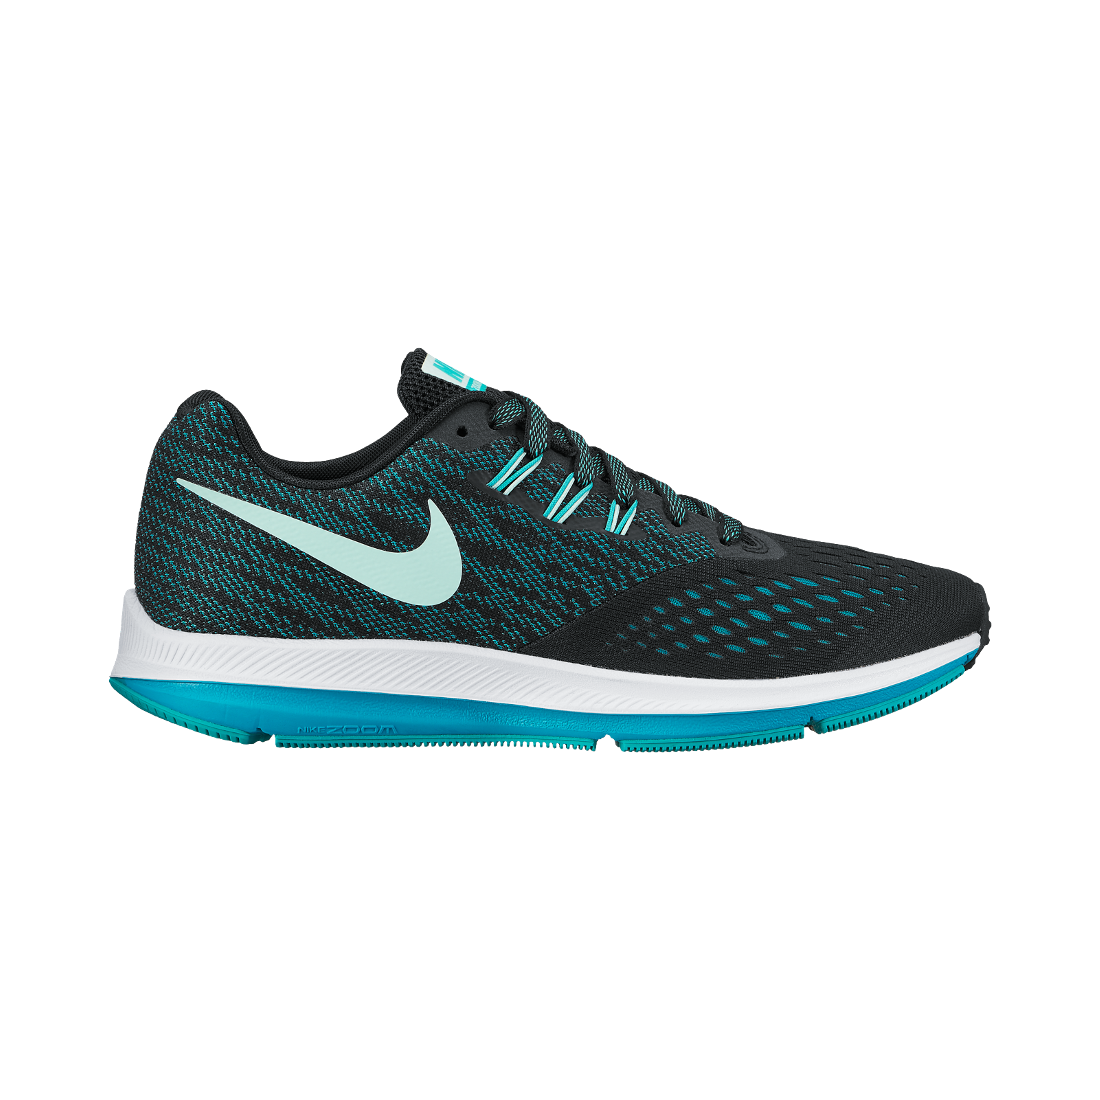 d0bac18466f1 https   assetscdn1.paytm.com images catalog product . Nike Women s Zoom  Winflo 4 Black Running Shoes